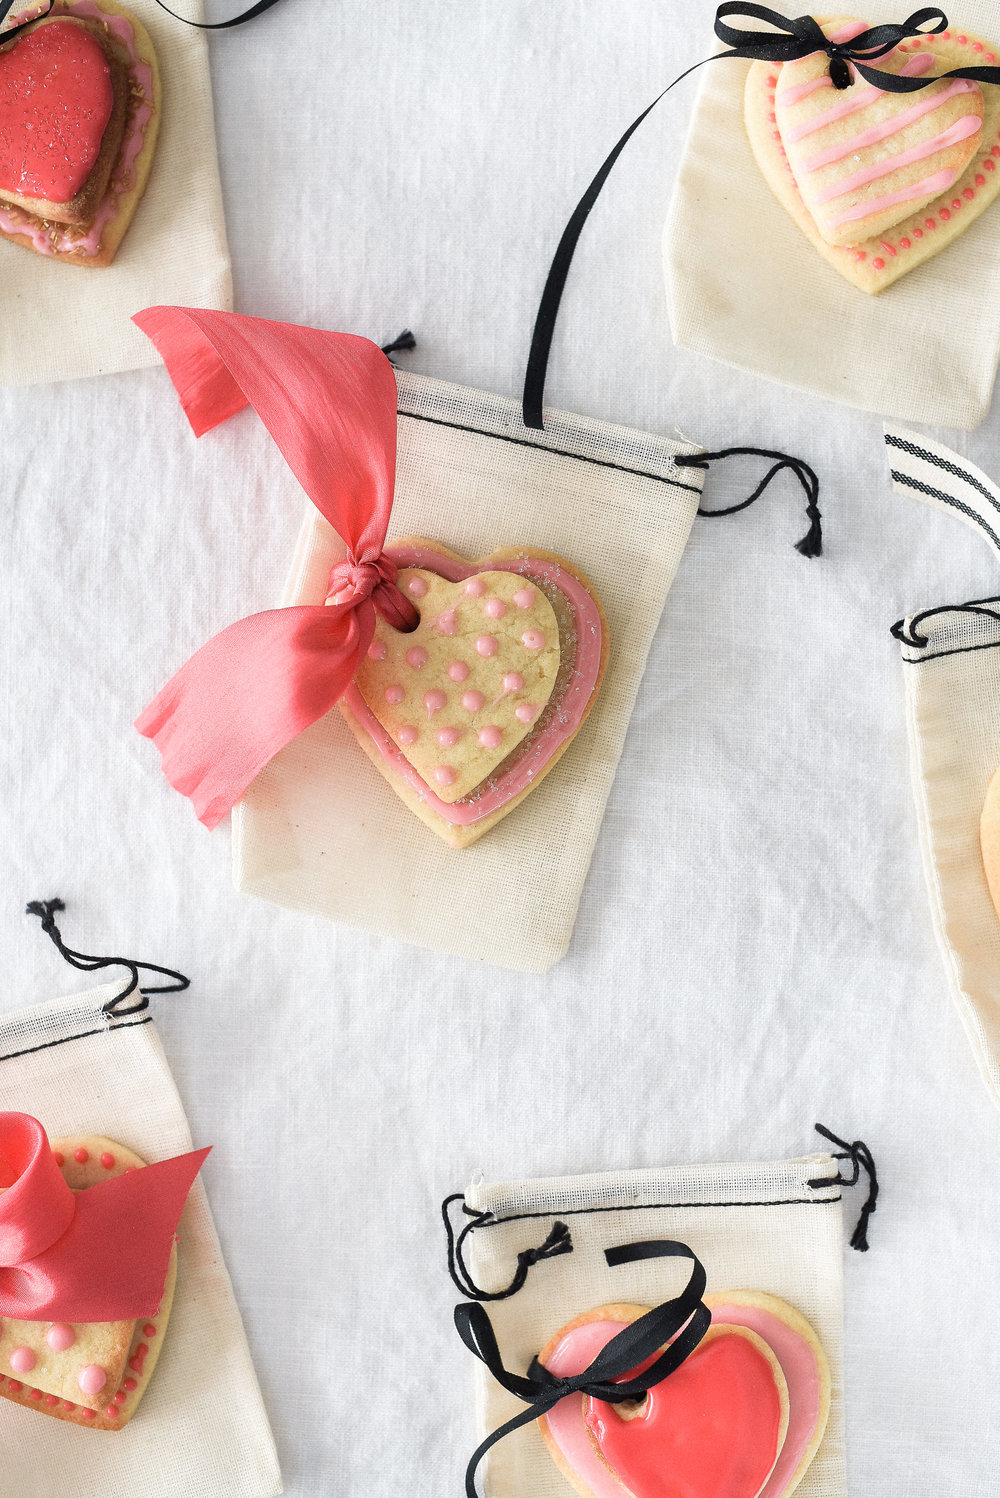 Adorable Valentine's Day sugar cookies heart shaped cookies with royal icing and ribbon | a unique valentine's day treat! #valentinesday #valentinesdaycookies #heartcookies boxwoodavenue.com